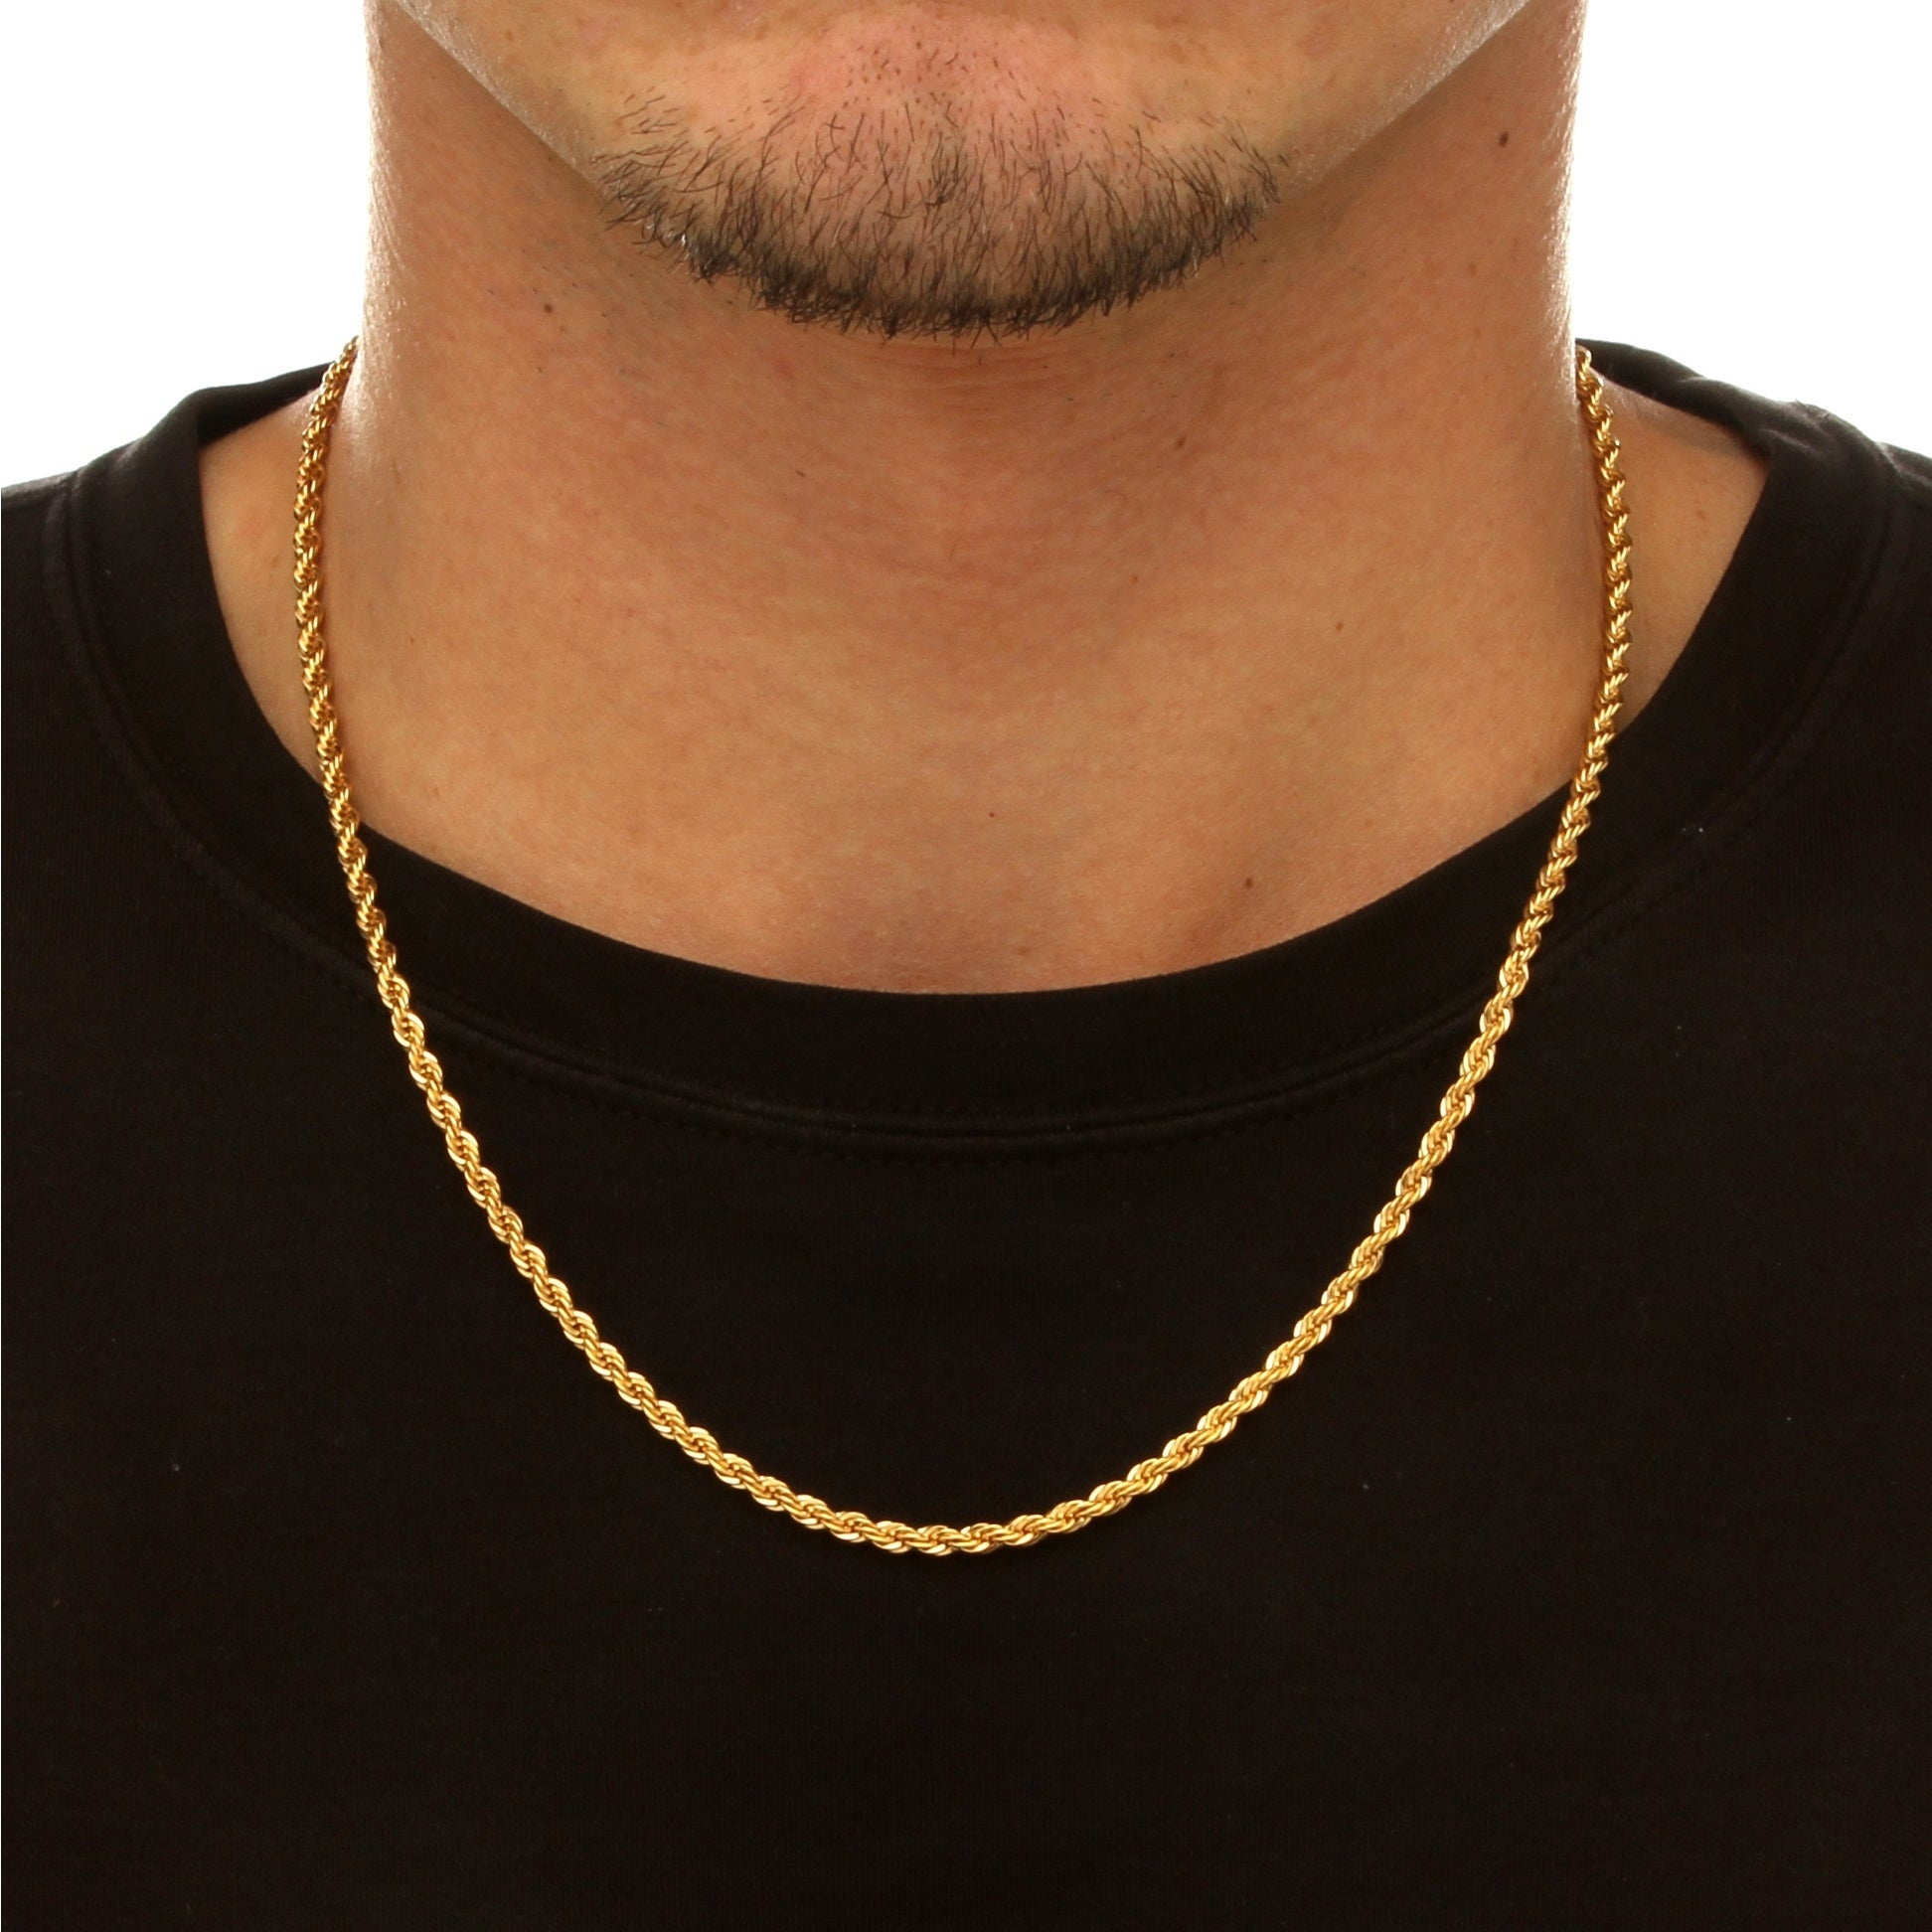 product mens price at chain men buy india online in gold for jewelry plating low s chains dare